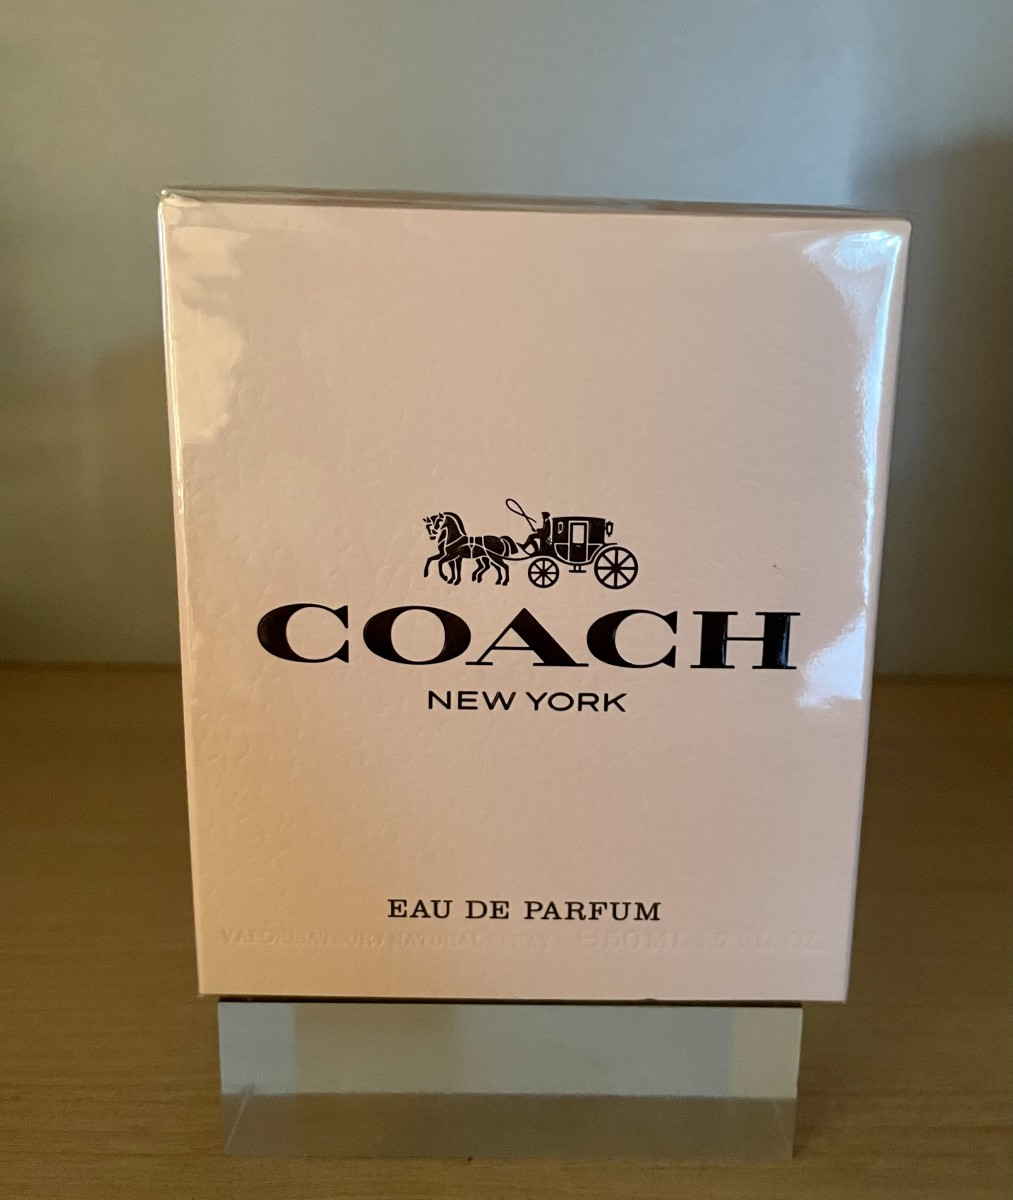 Coach edp 50 ml